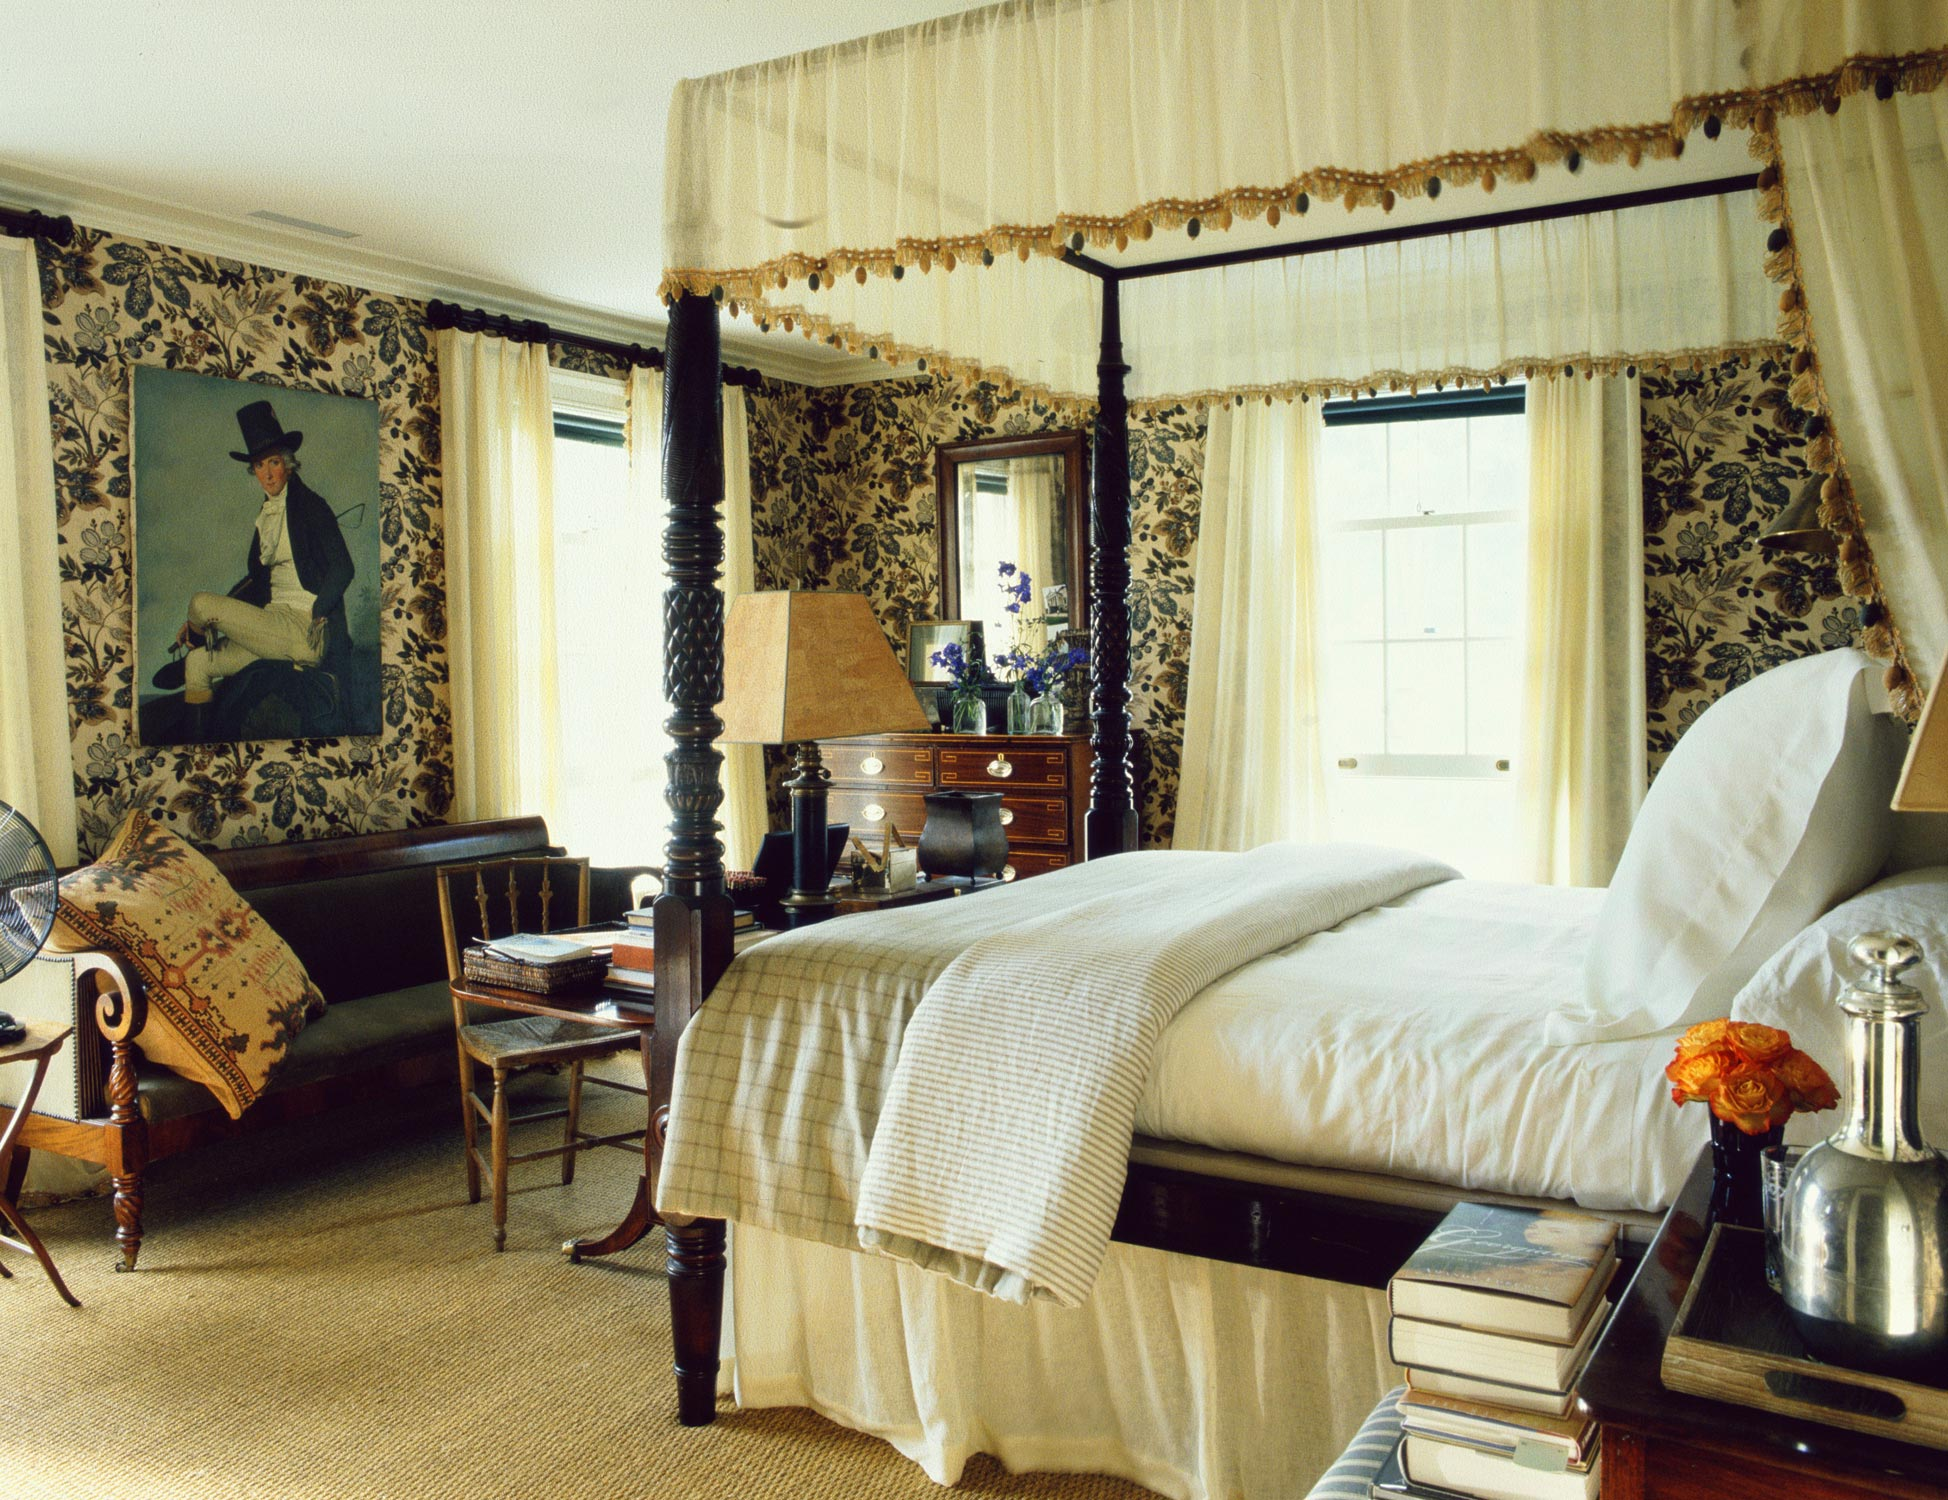 Gp schafer four poster bed colonial bedroom decor scene for Colonial style bedroom ideas